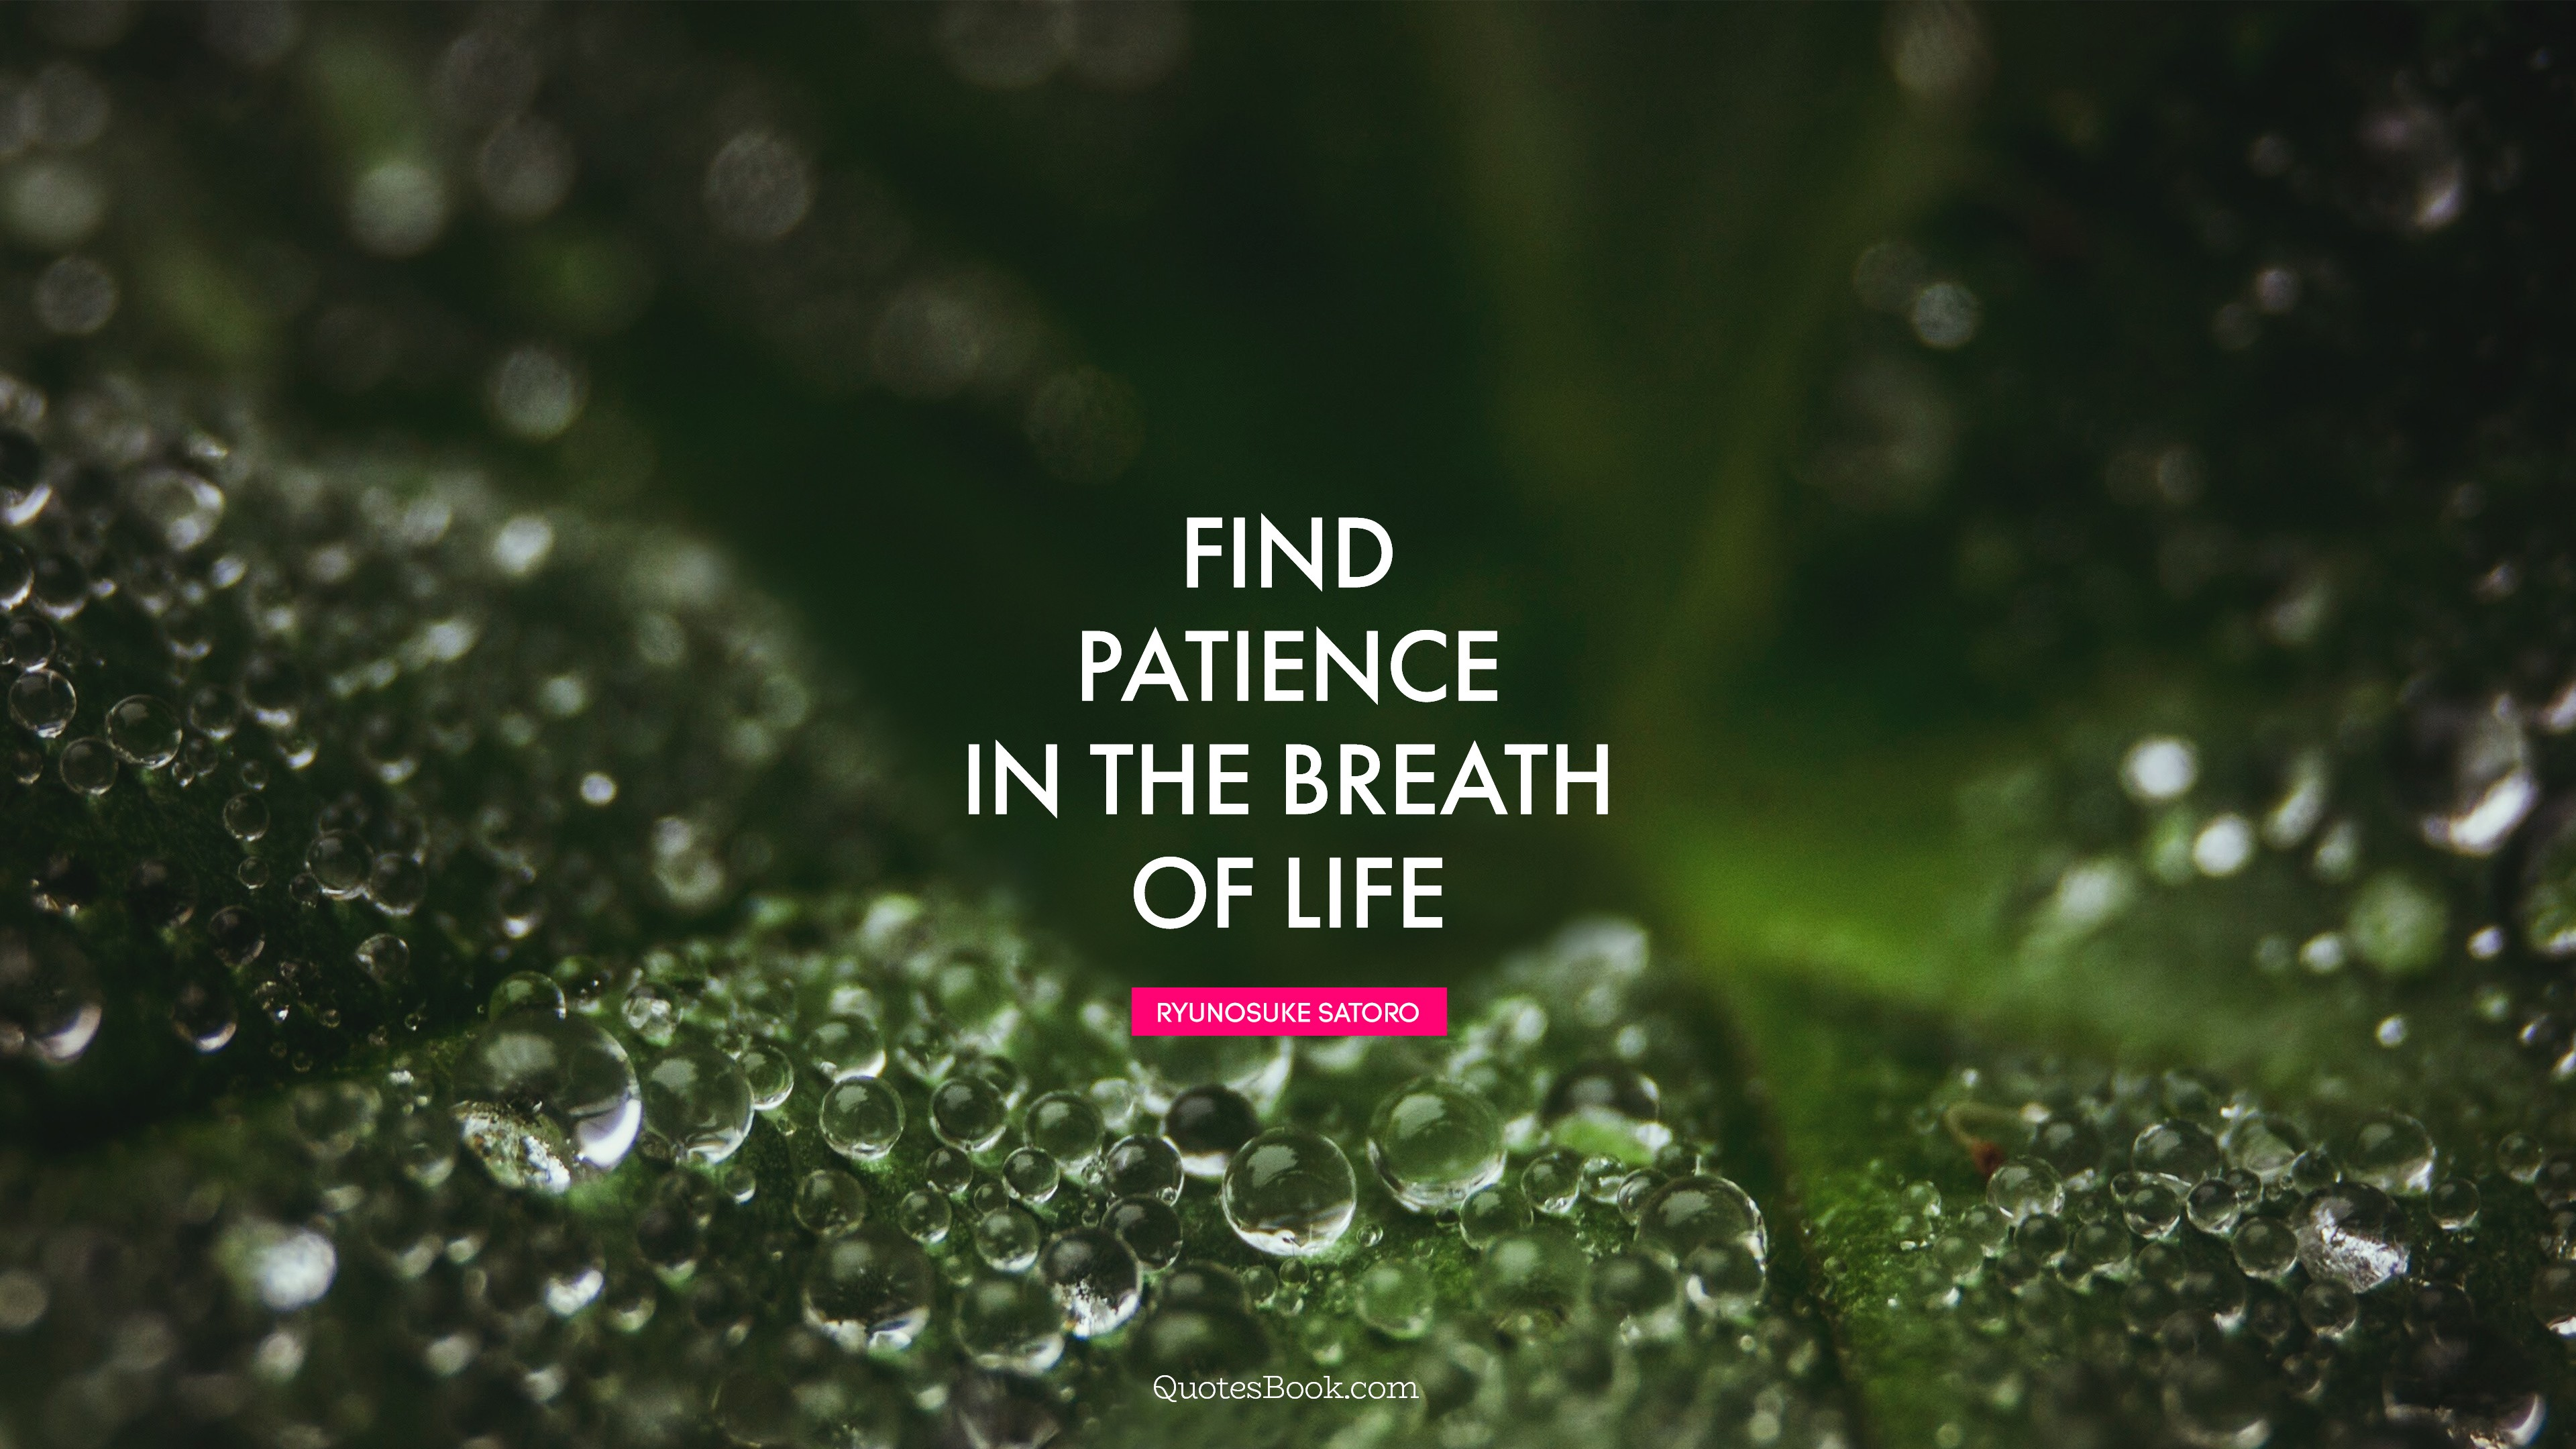 Find Patience In The Breath Of Life Quote By Ryunosuke Satoro